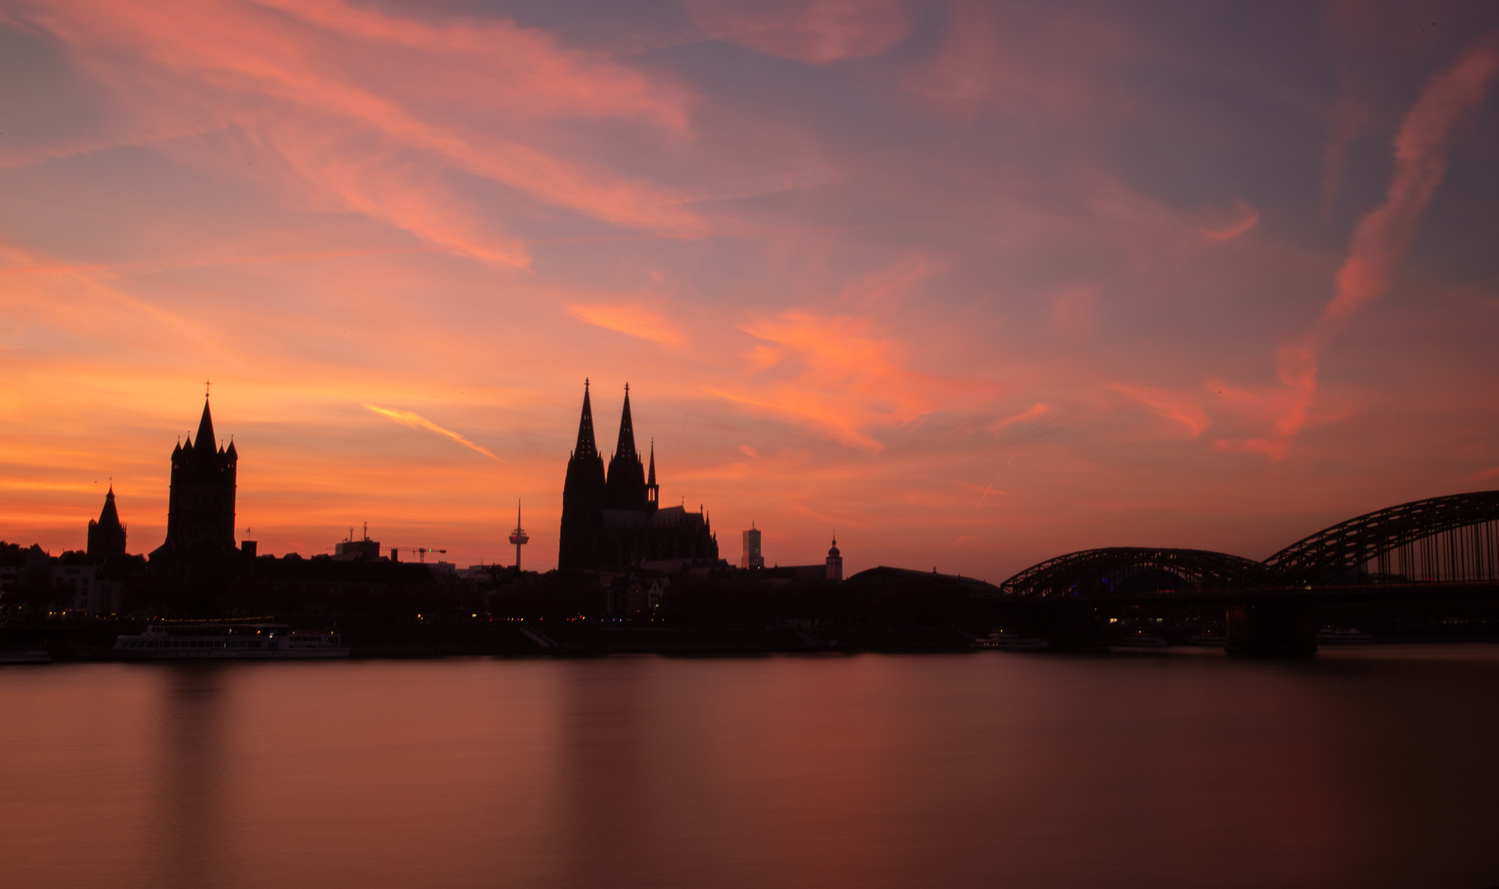 Cologne Cathedral at Sunset by Ashleigh Magill